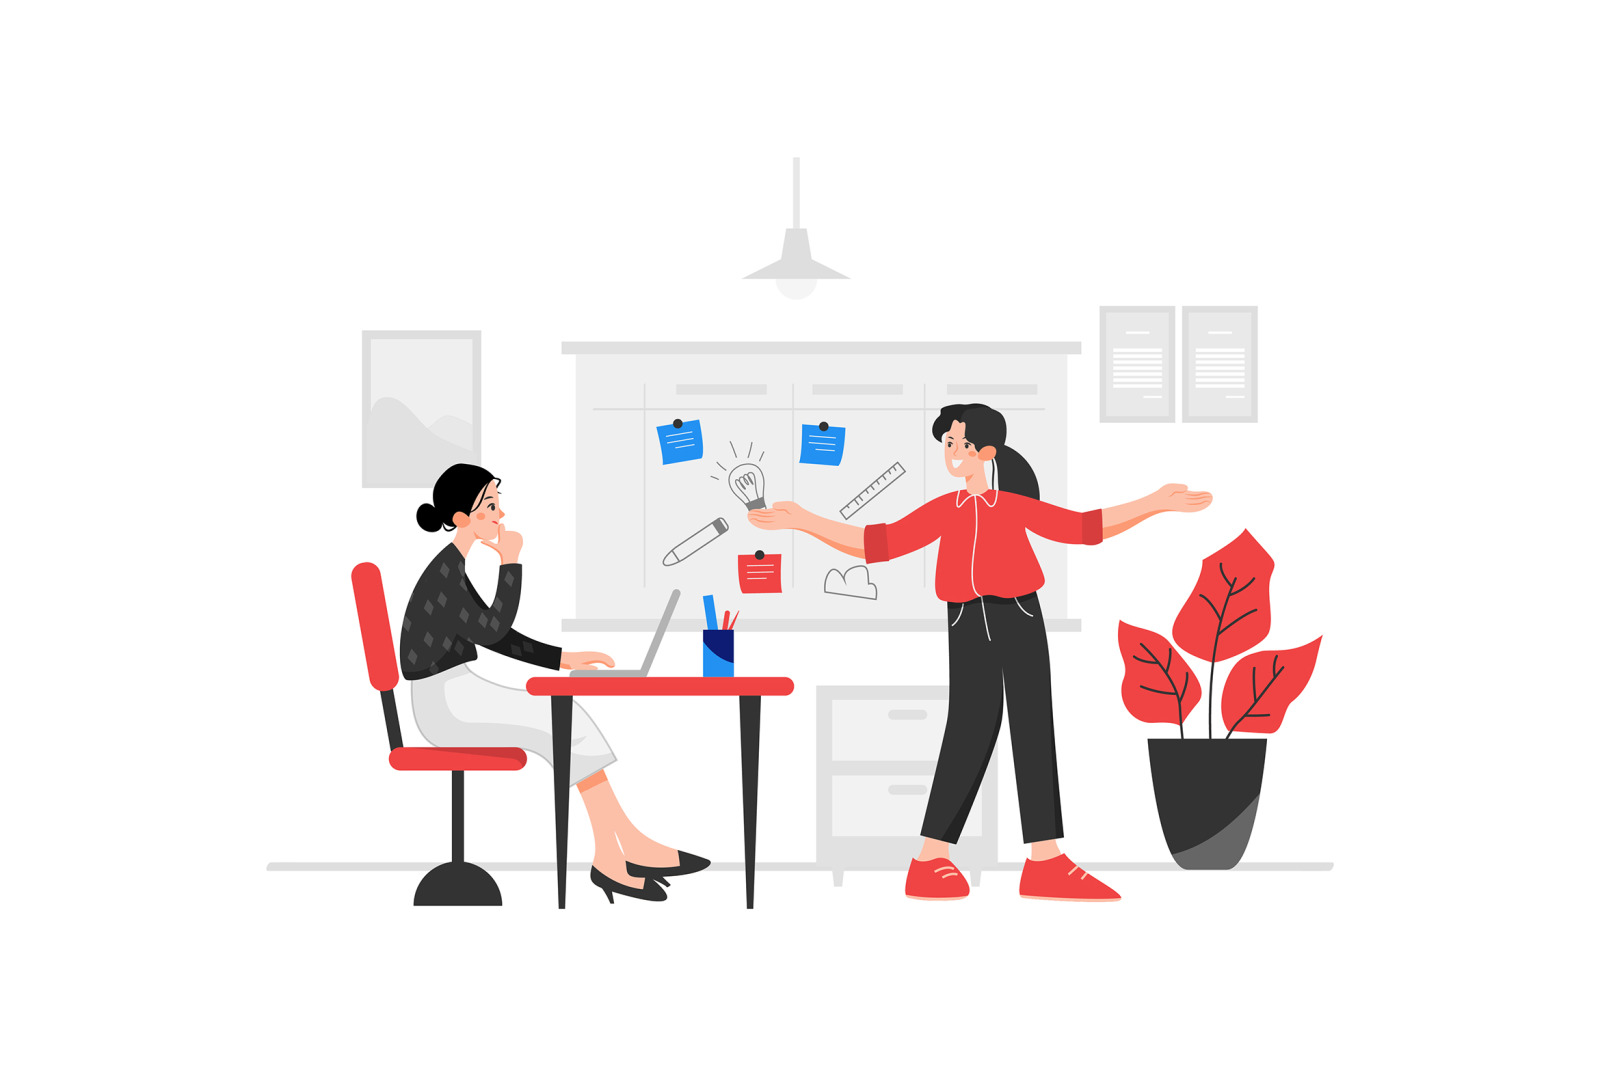 M72_Office Management Illustrations